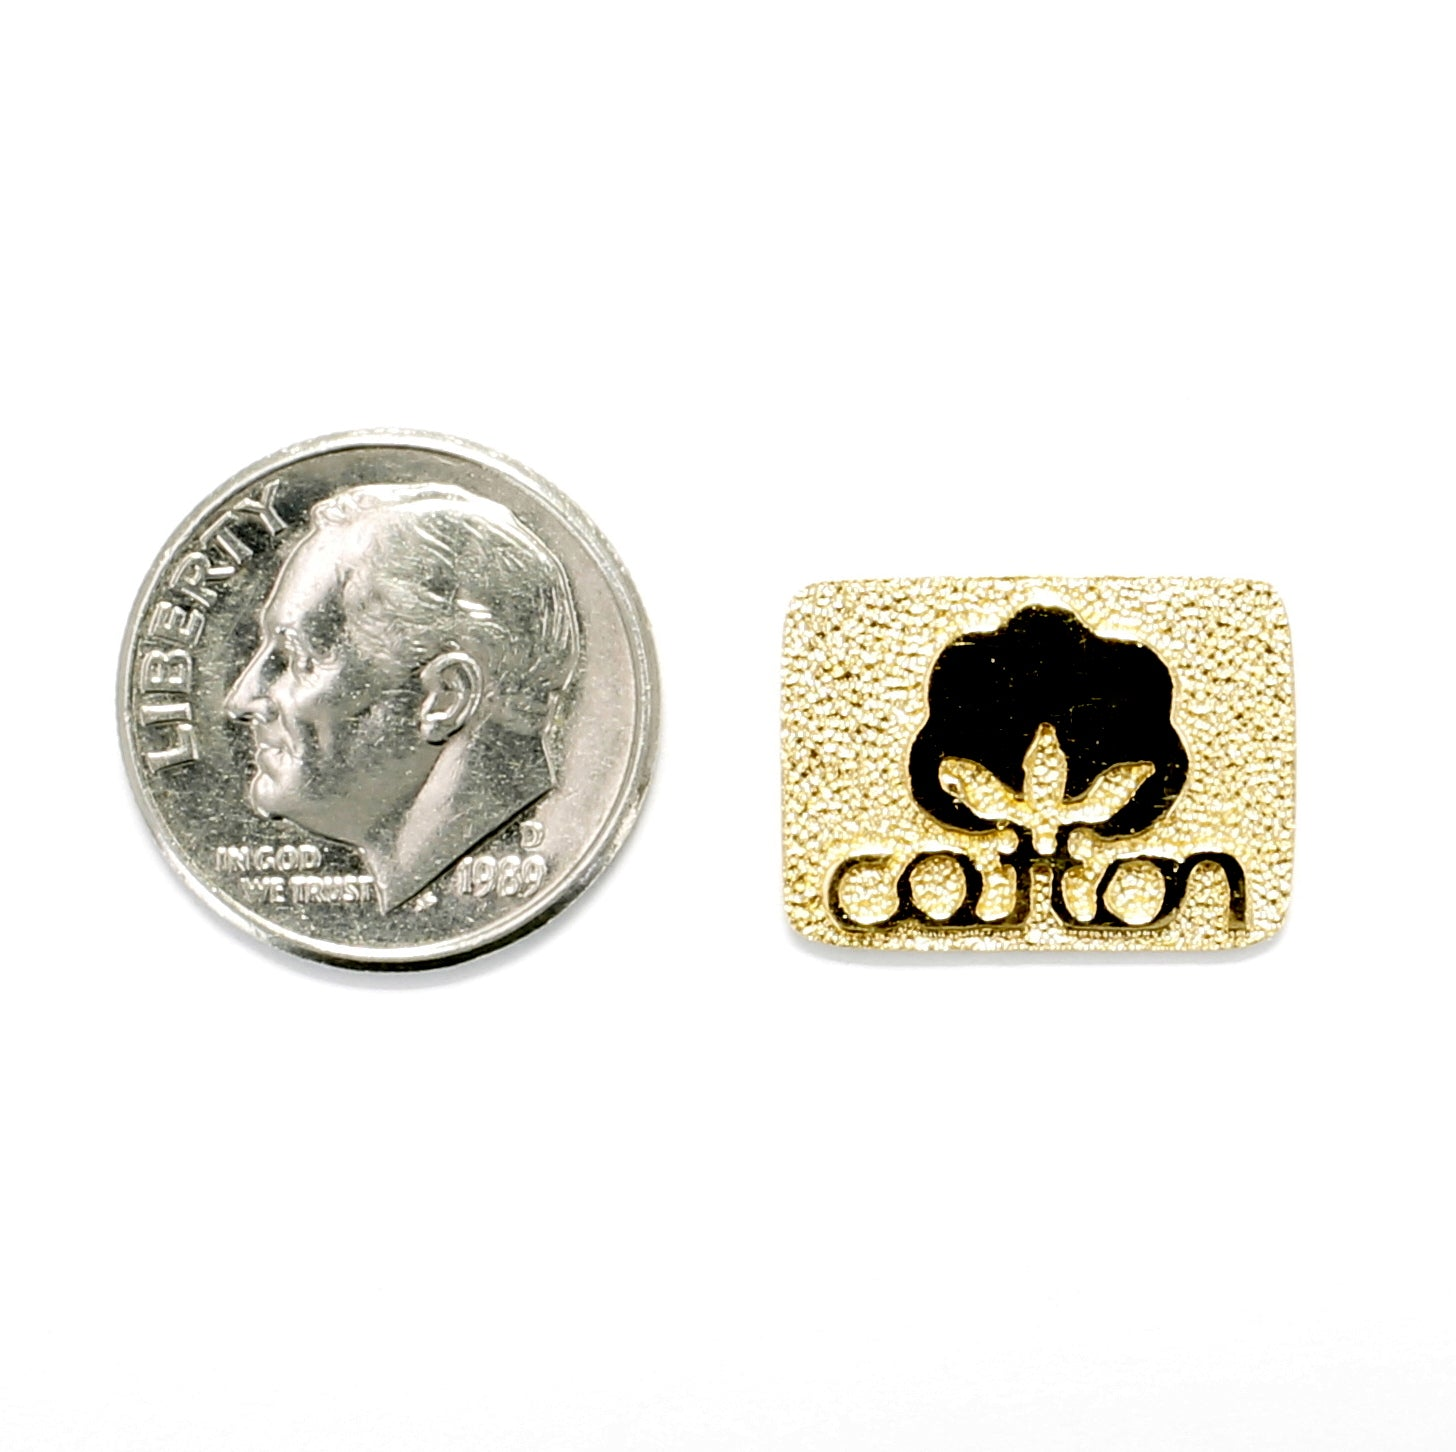 Cotton Inc 14kt Gold Vermeil Tie Tack or Pin with Seal of Cotton Logo